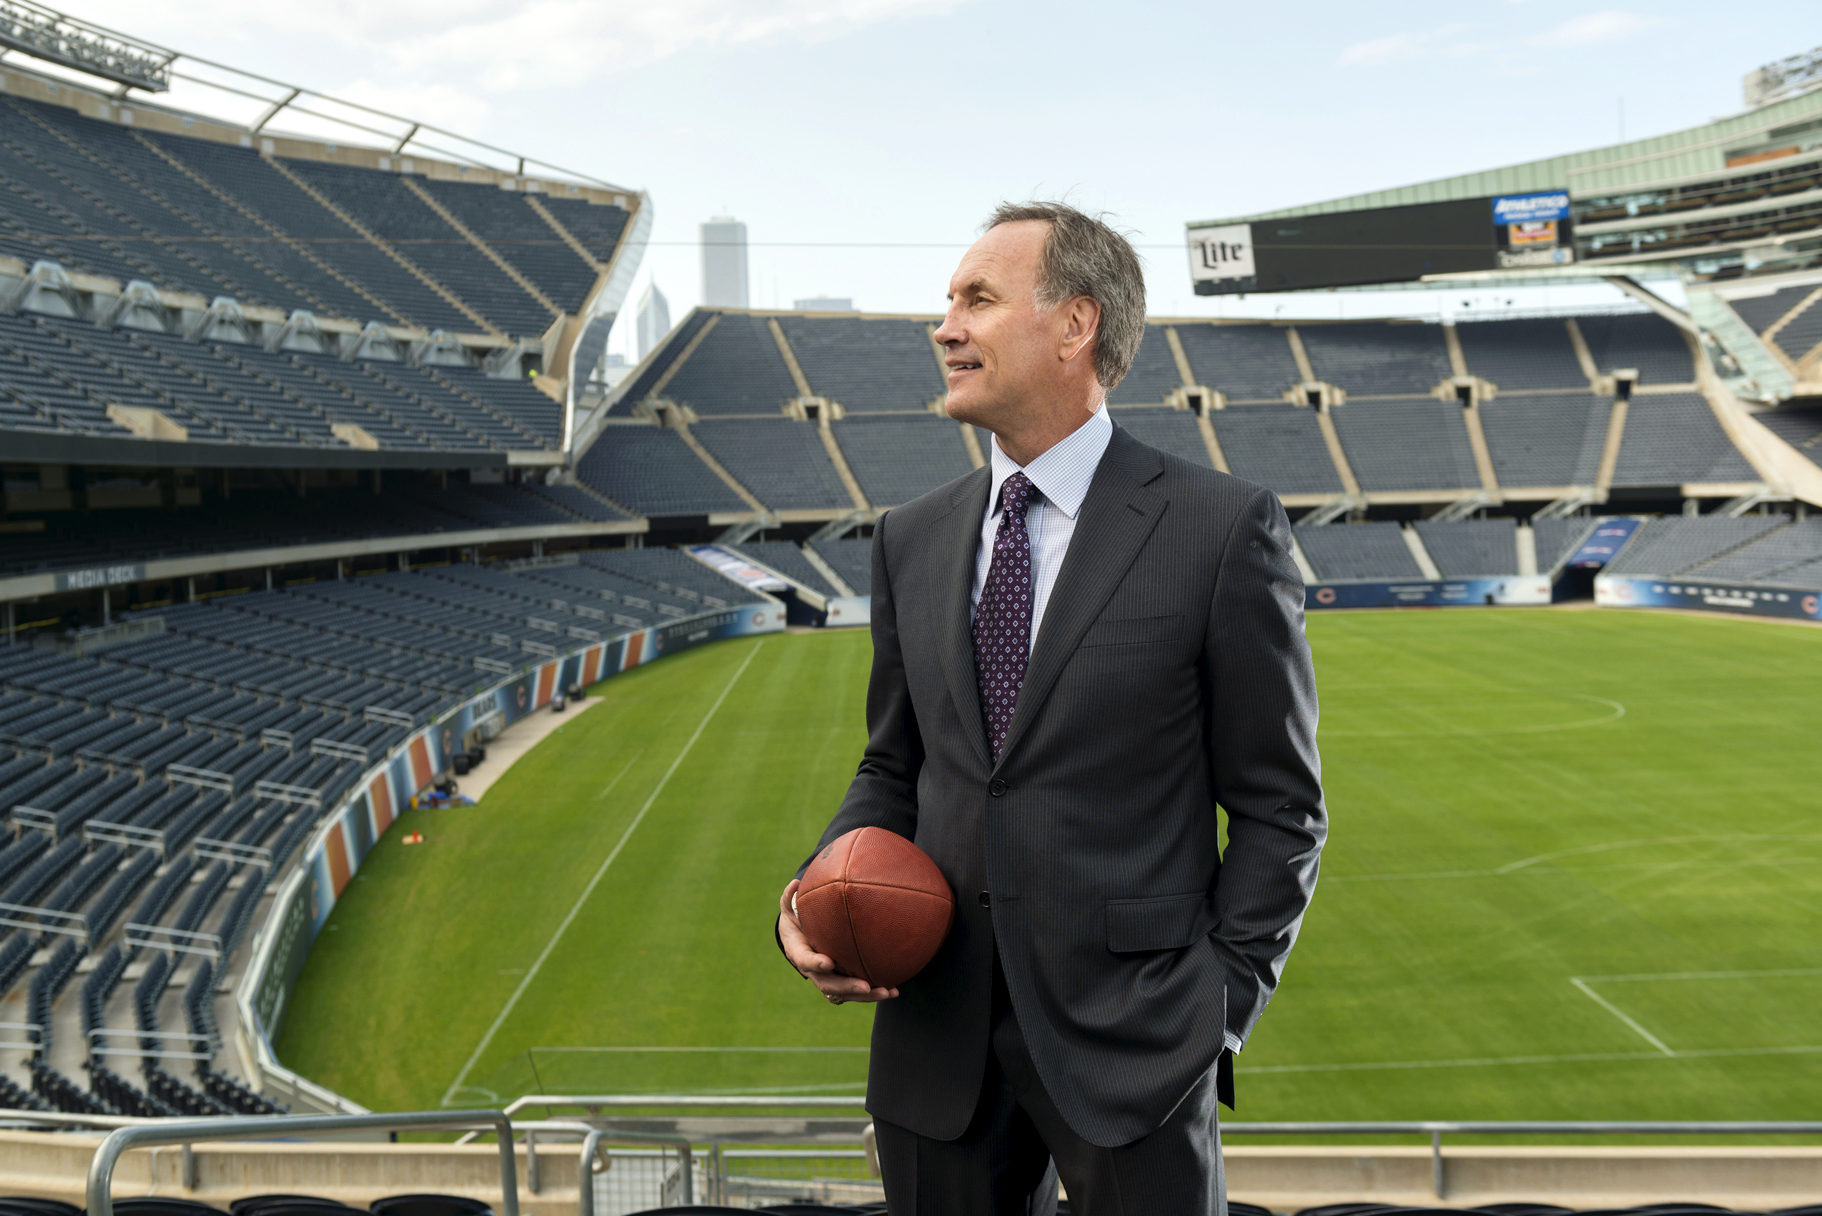 The interception king at Chicago's Soldier Field in July